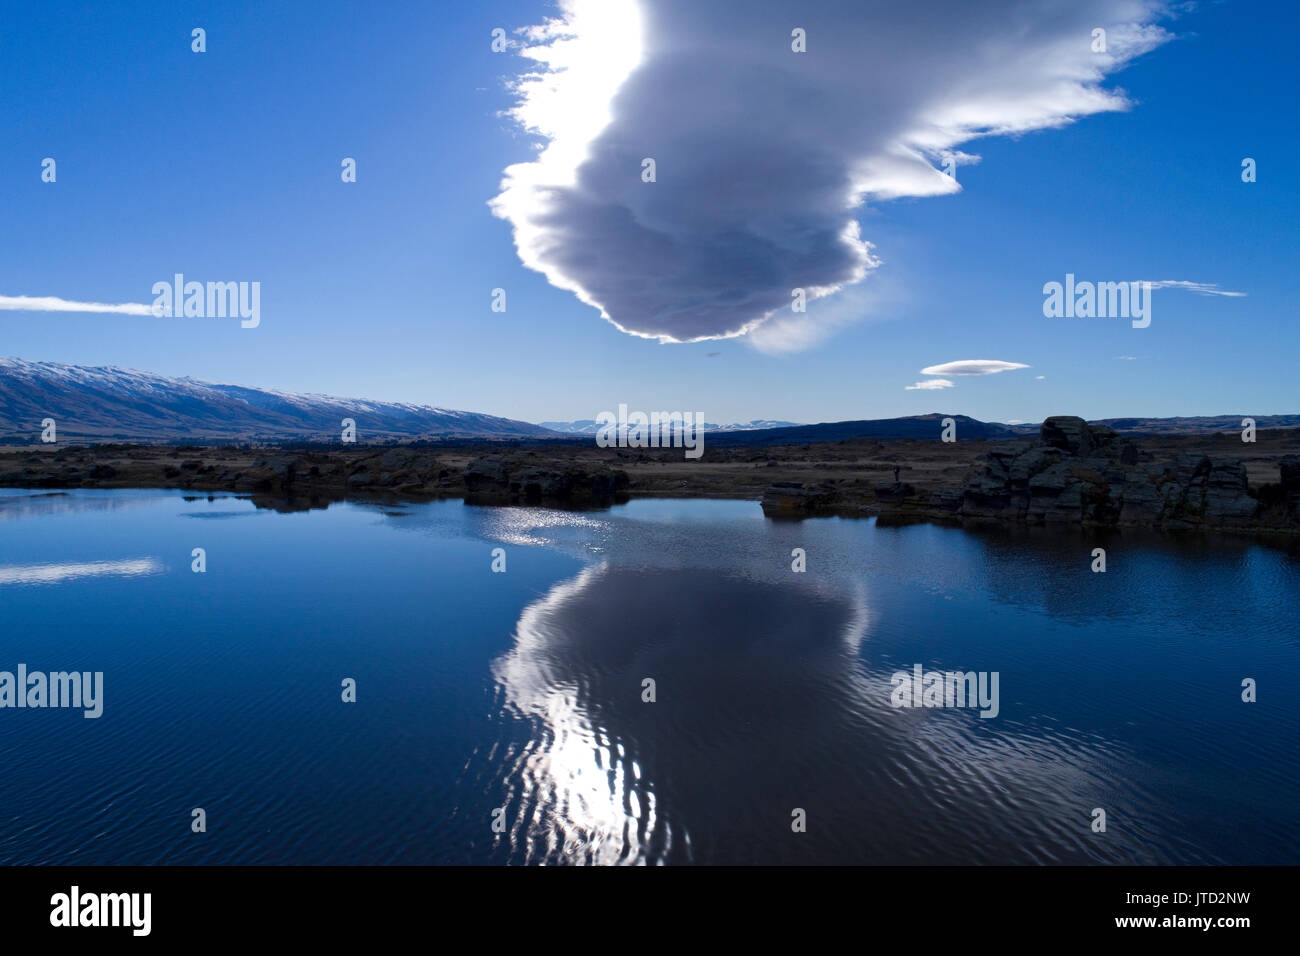 Sutton Salt Lake & 'The Taieri Pet' (lenticular billow cloud), Sutton, nr Middlemarch, Strath Taieri, Otago, South Island, New Zealand - drone aerial - Stock Image